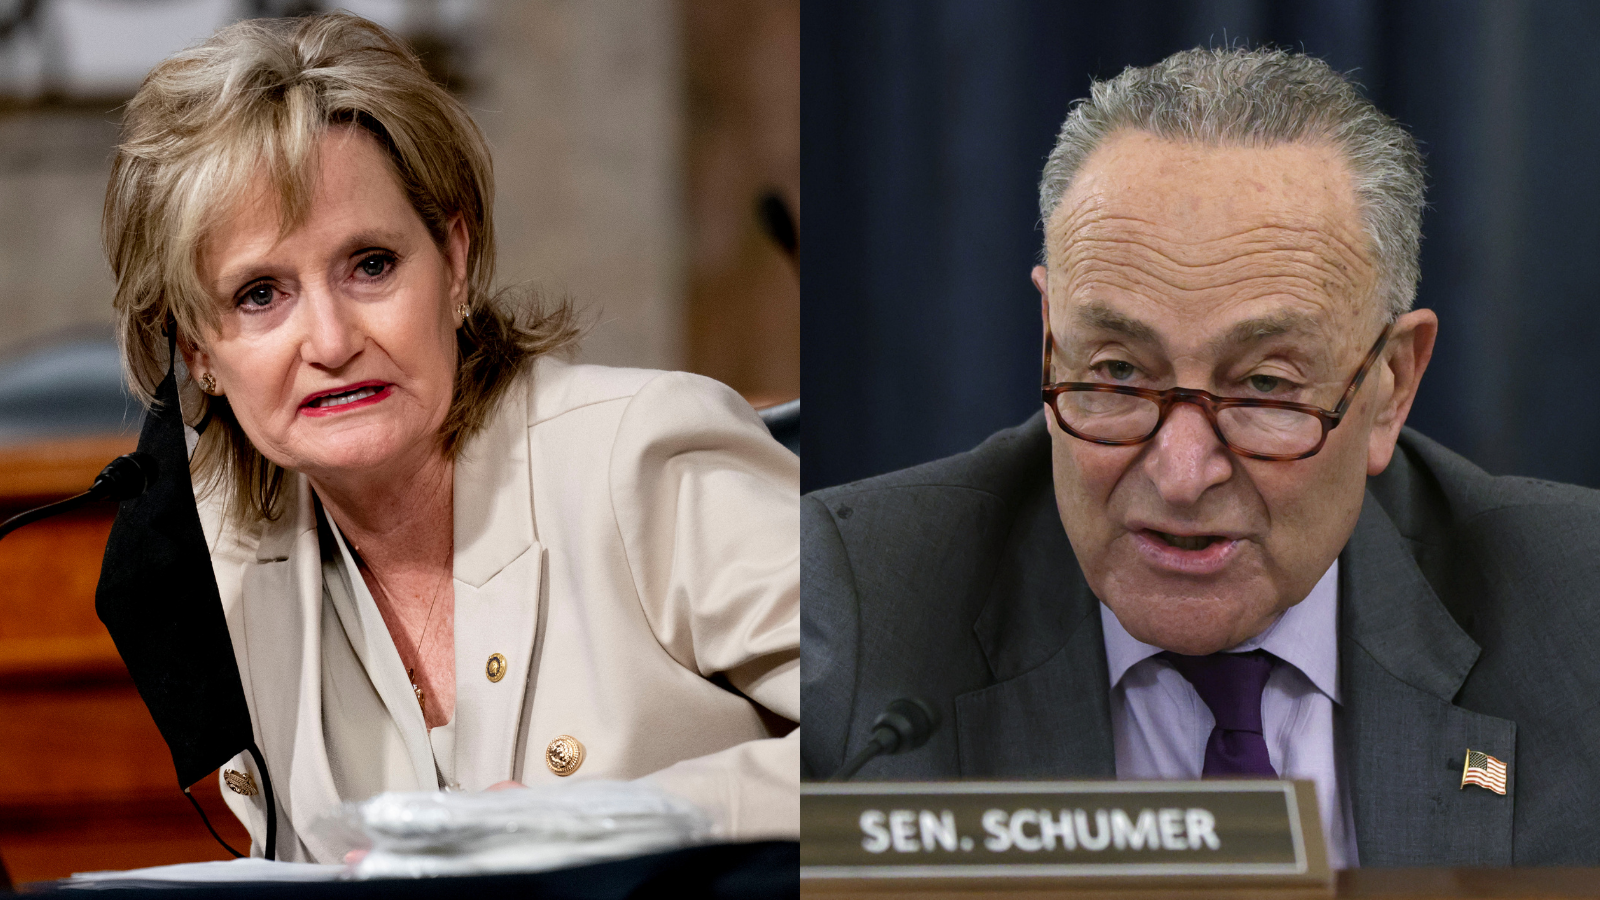 A GOP Senator Lectured Chuck Schumer About the Sabbath to Defend Voter Suppression